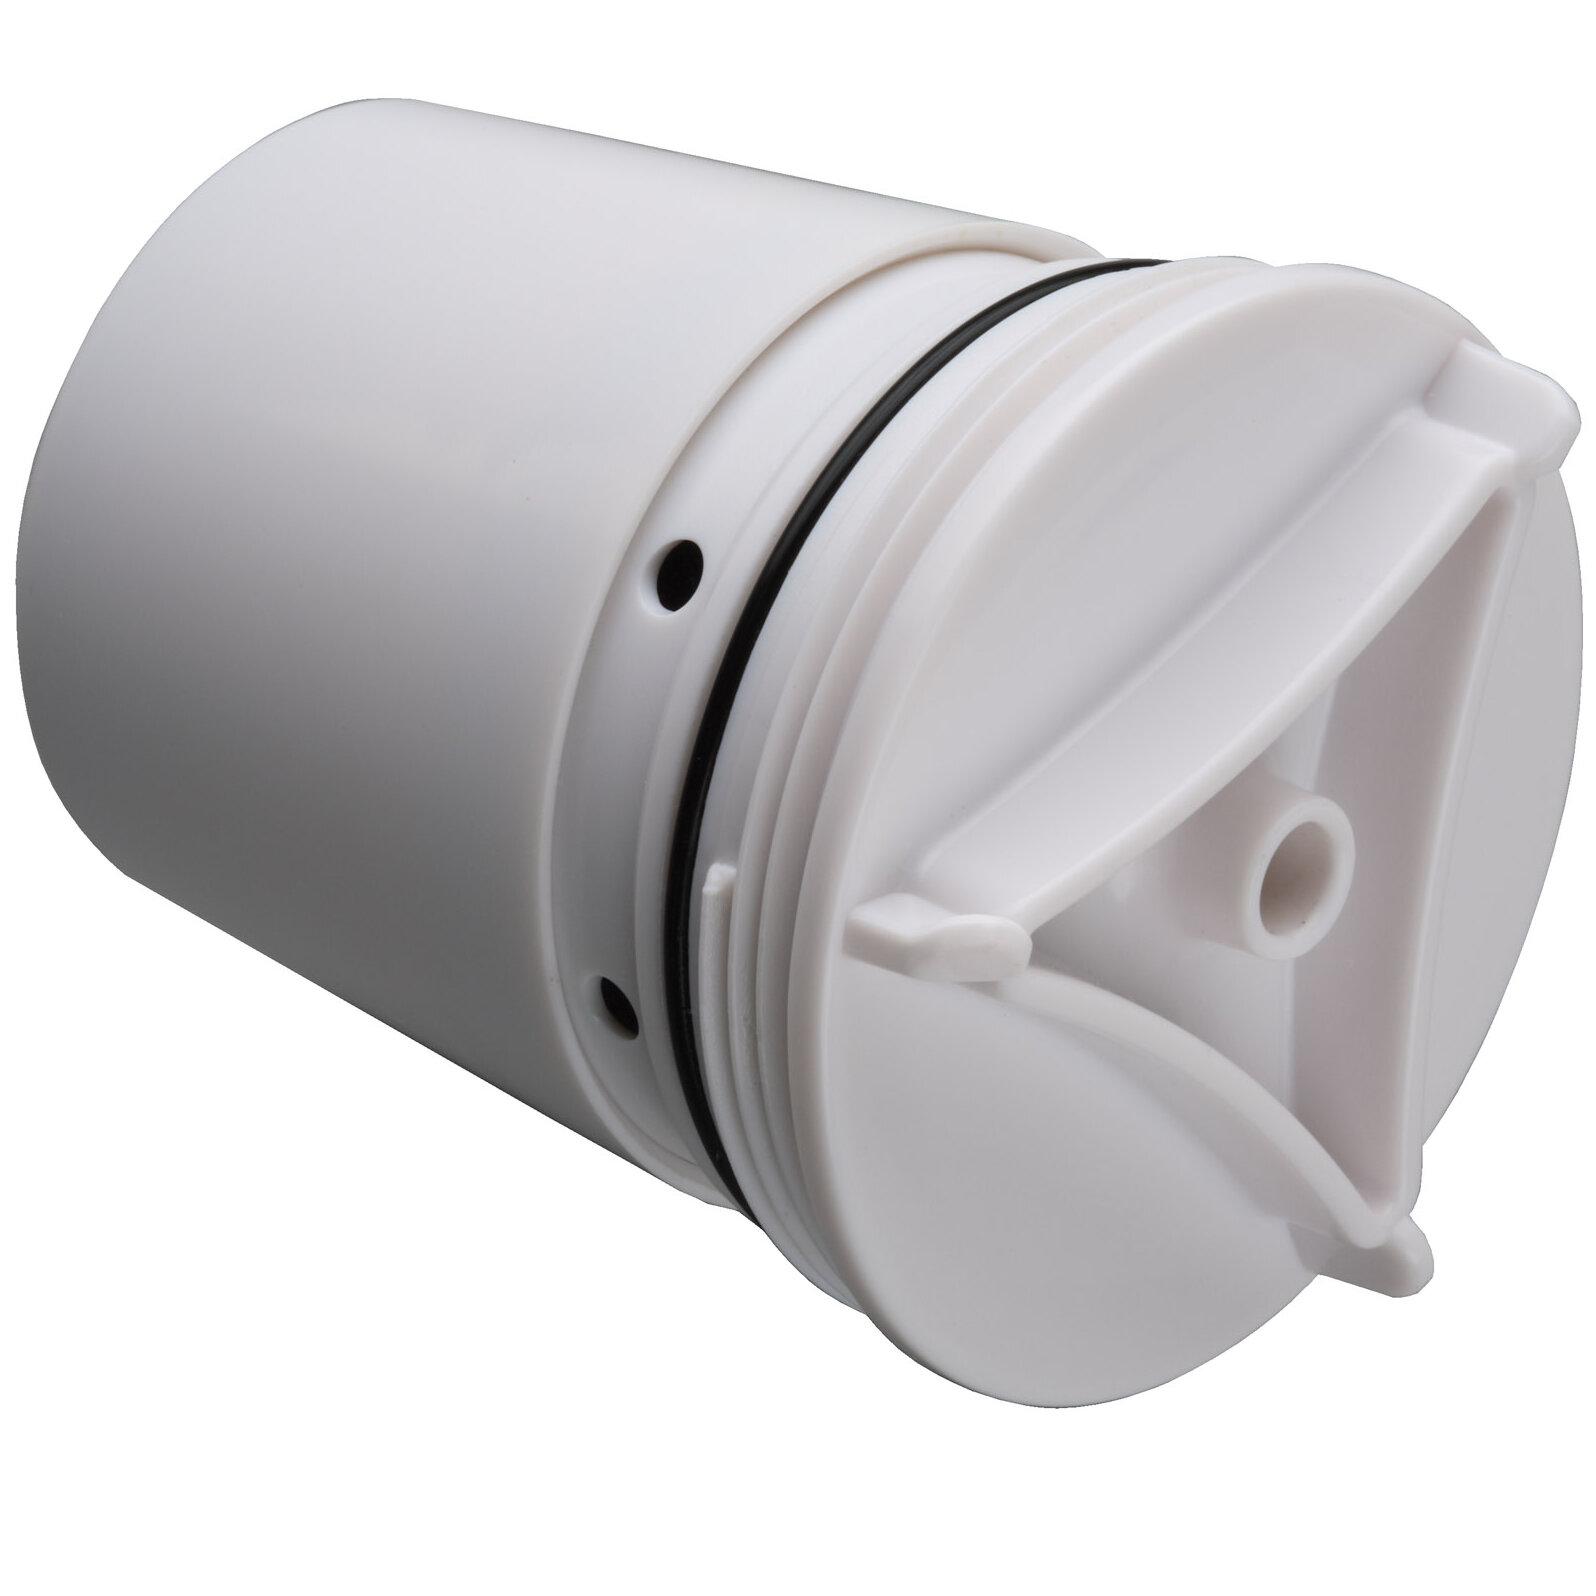 Culligan Level 3 Replacement Cartridge for FM-15A | Wayfair